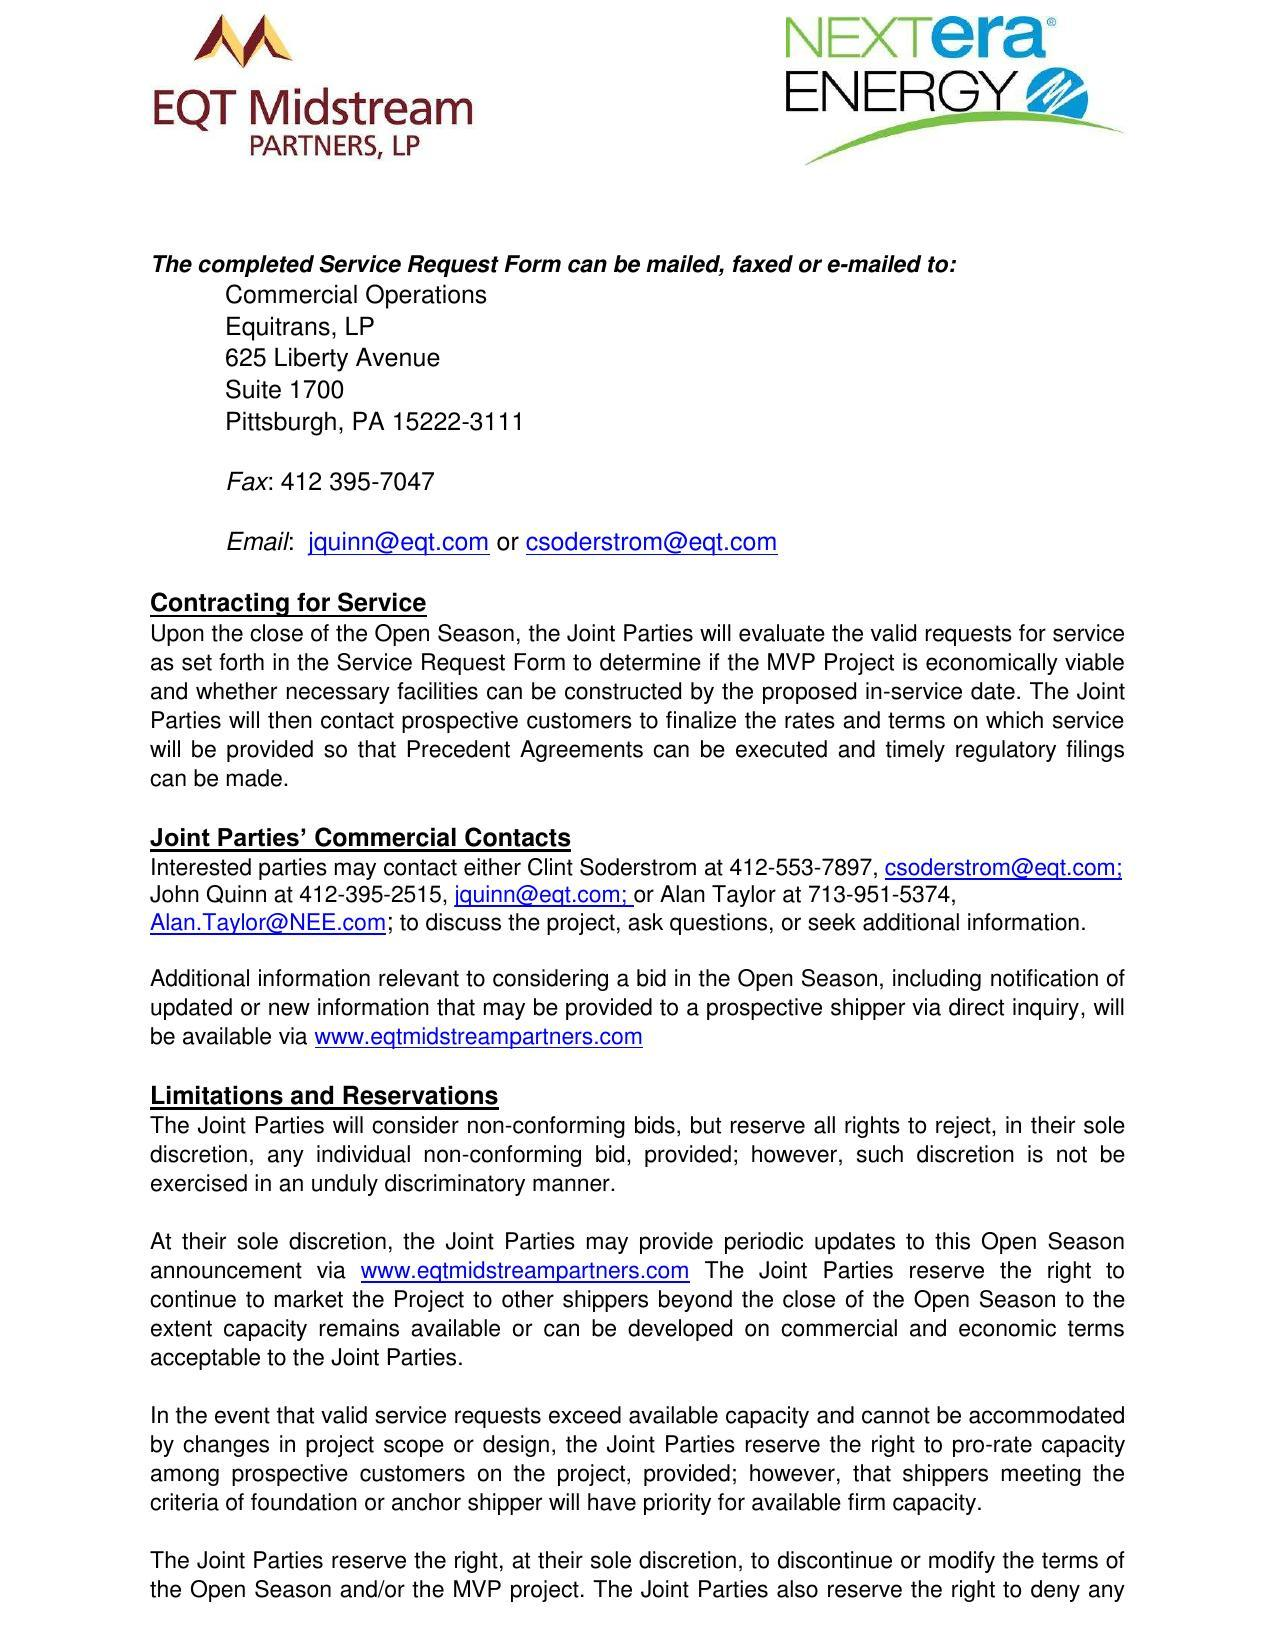 1275x1650 Contracting for Service, in Mountain Valley Pipeline Non-binding Open Season, by EQT Midstream Partners, LLP and NextEra Energy, for SpectraBusters.org, 12 June 2014